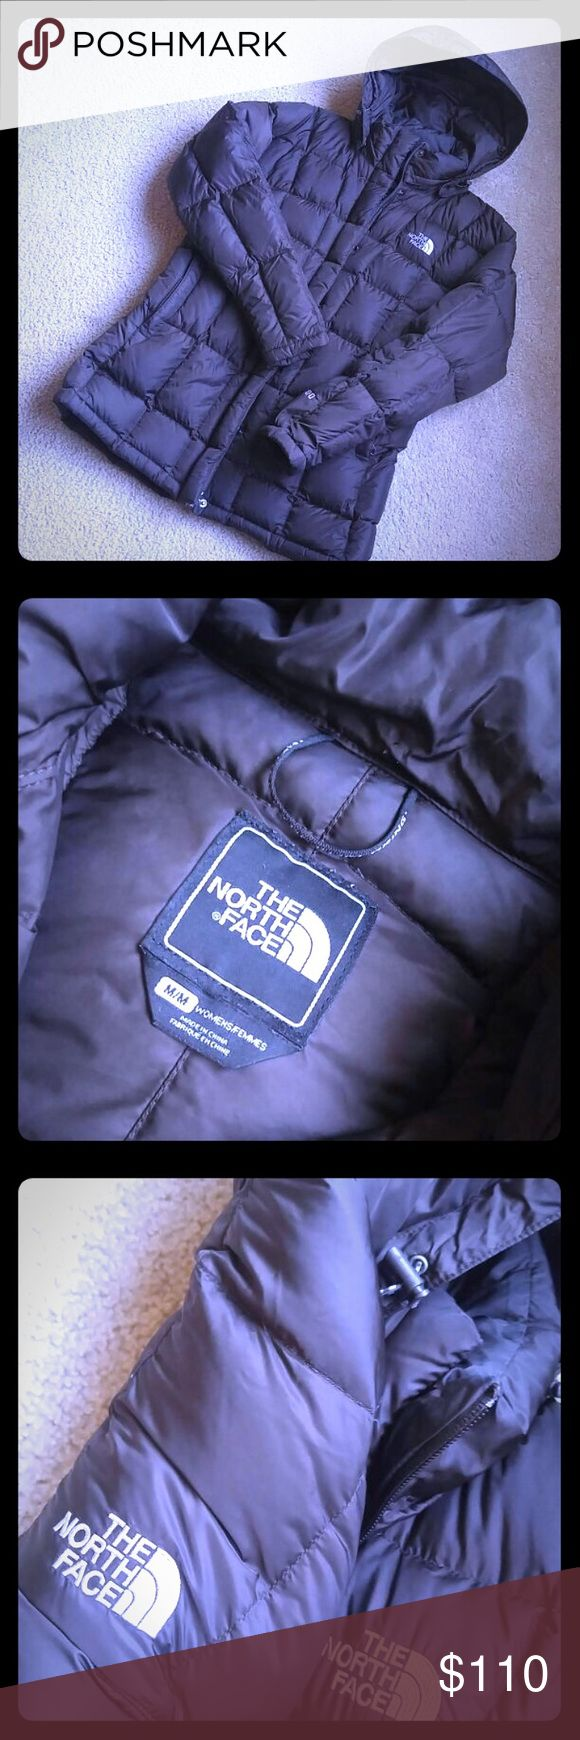 The North Face winter jacket in a woman's brown, M The North Face winter jacket in awesome like new condition! Size women's medium with hood. Dark brown. 600 down fill. Make me a reasonable offer. I'll sell. The North Face Jackets & Coats Puffers